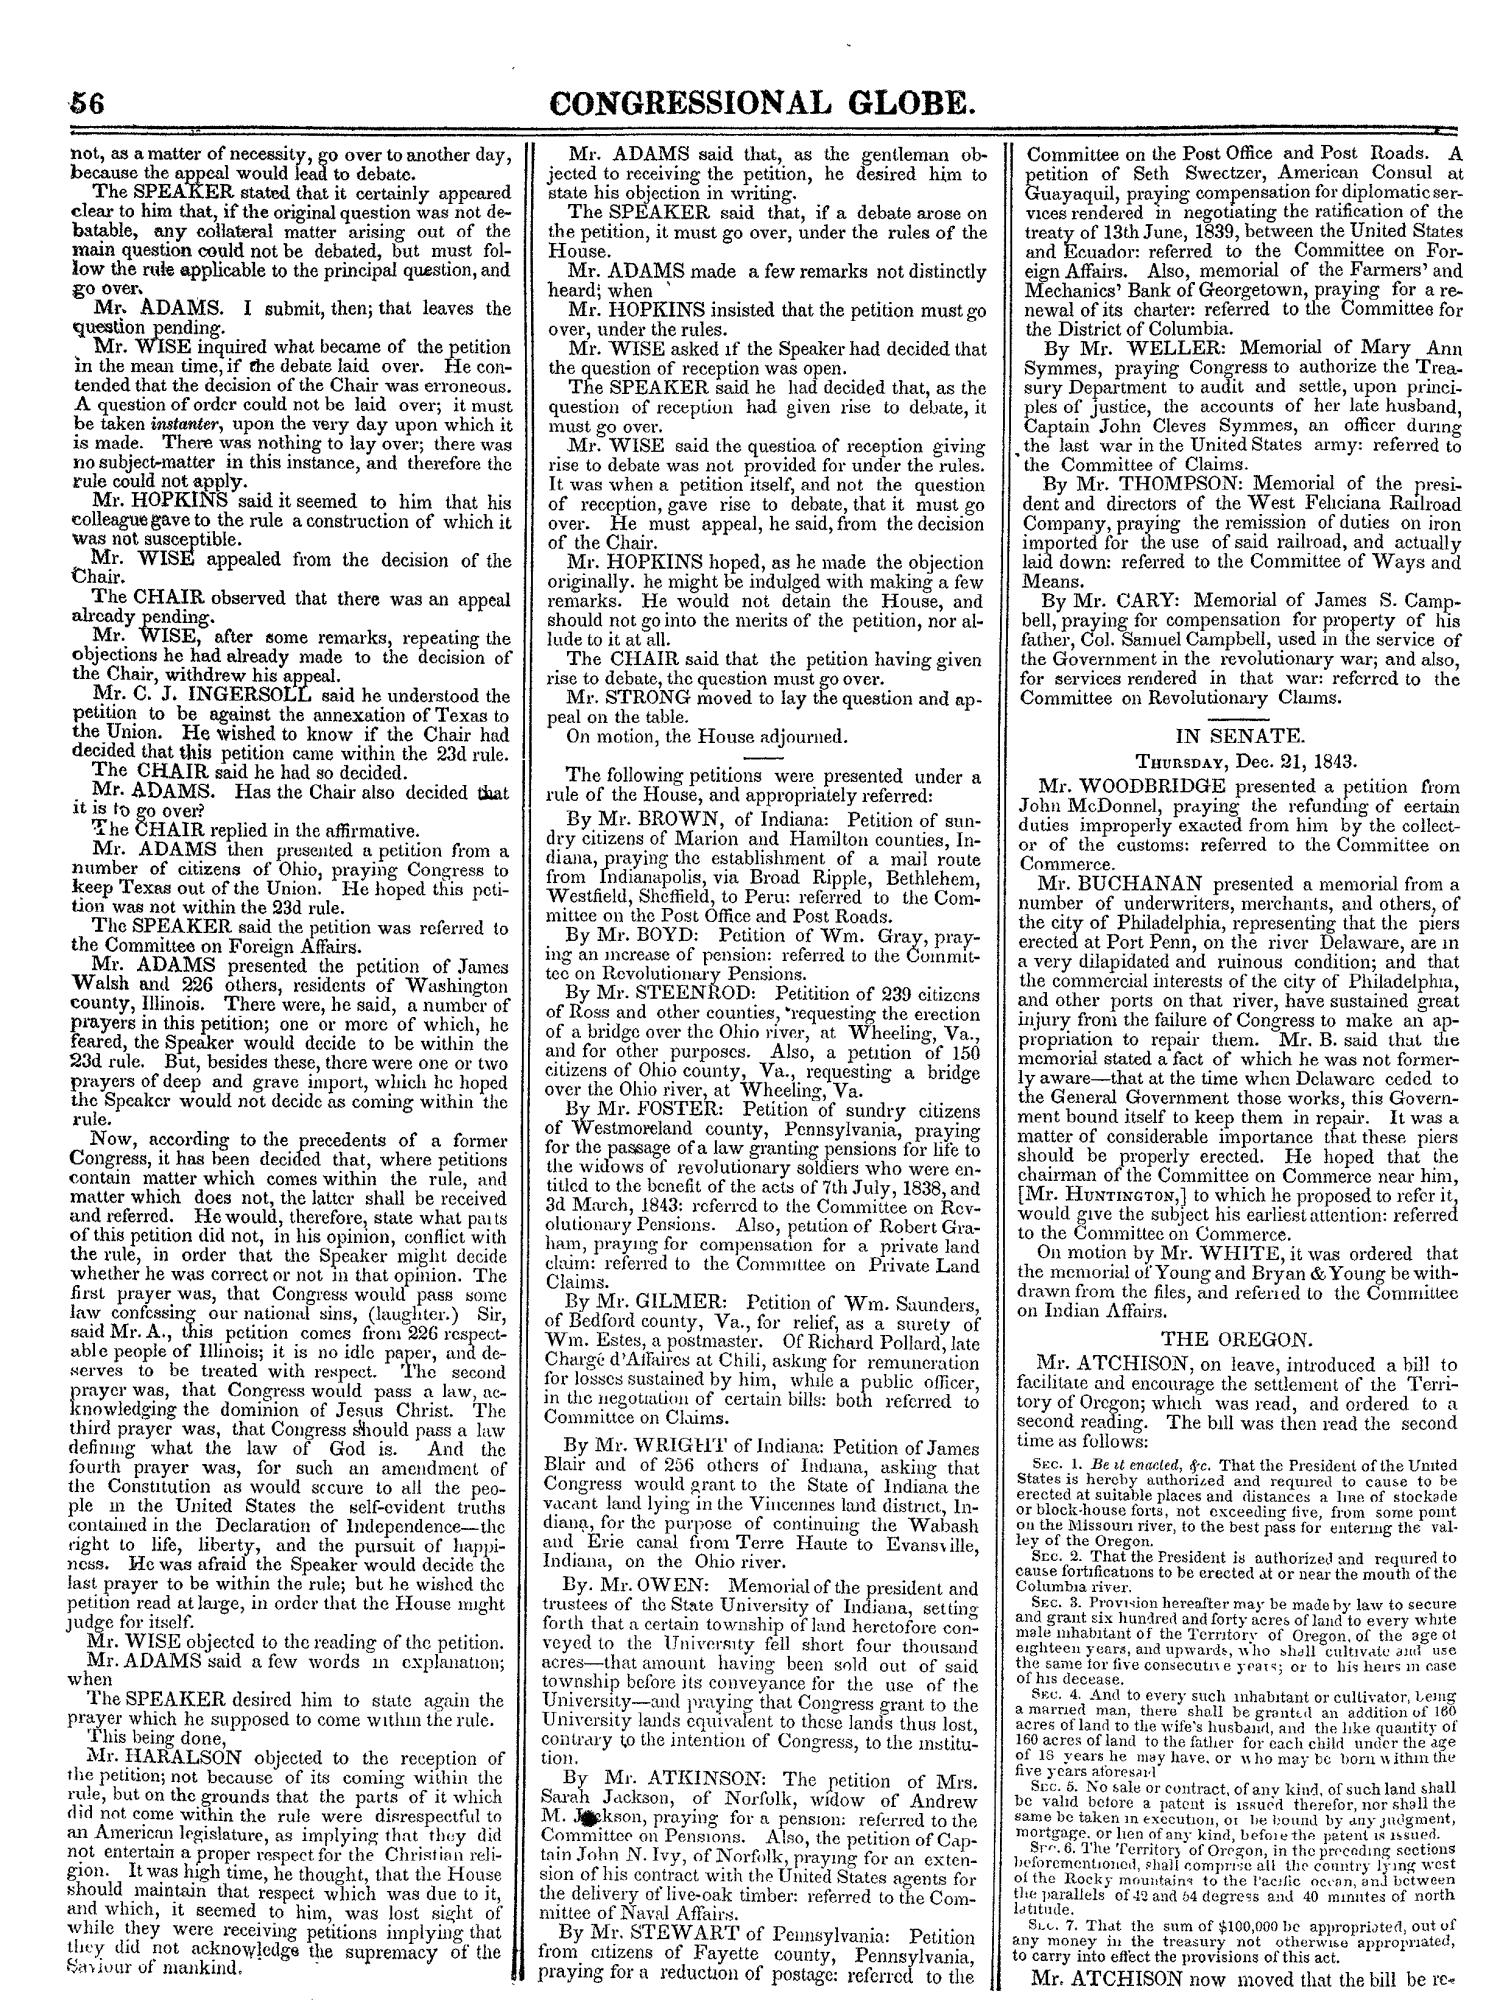 The Congressional Globe, Volume 13, Part 1: Twenty-Eighth Congress, First Session                                                                                                      56